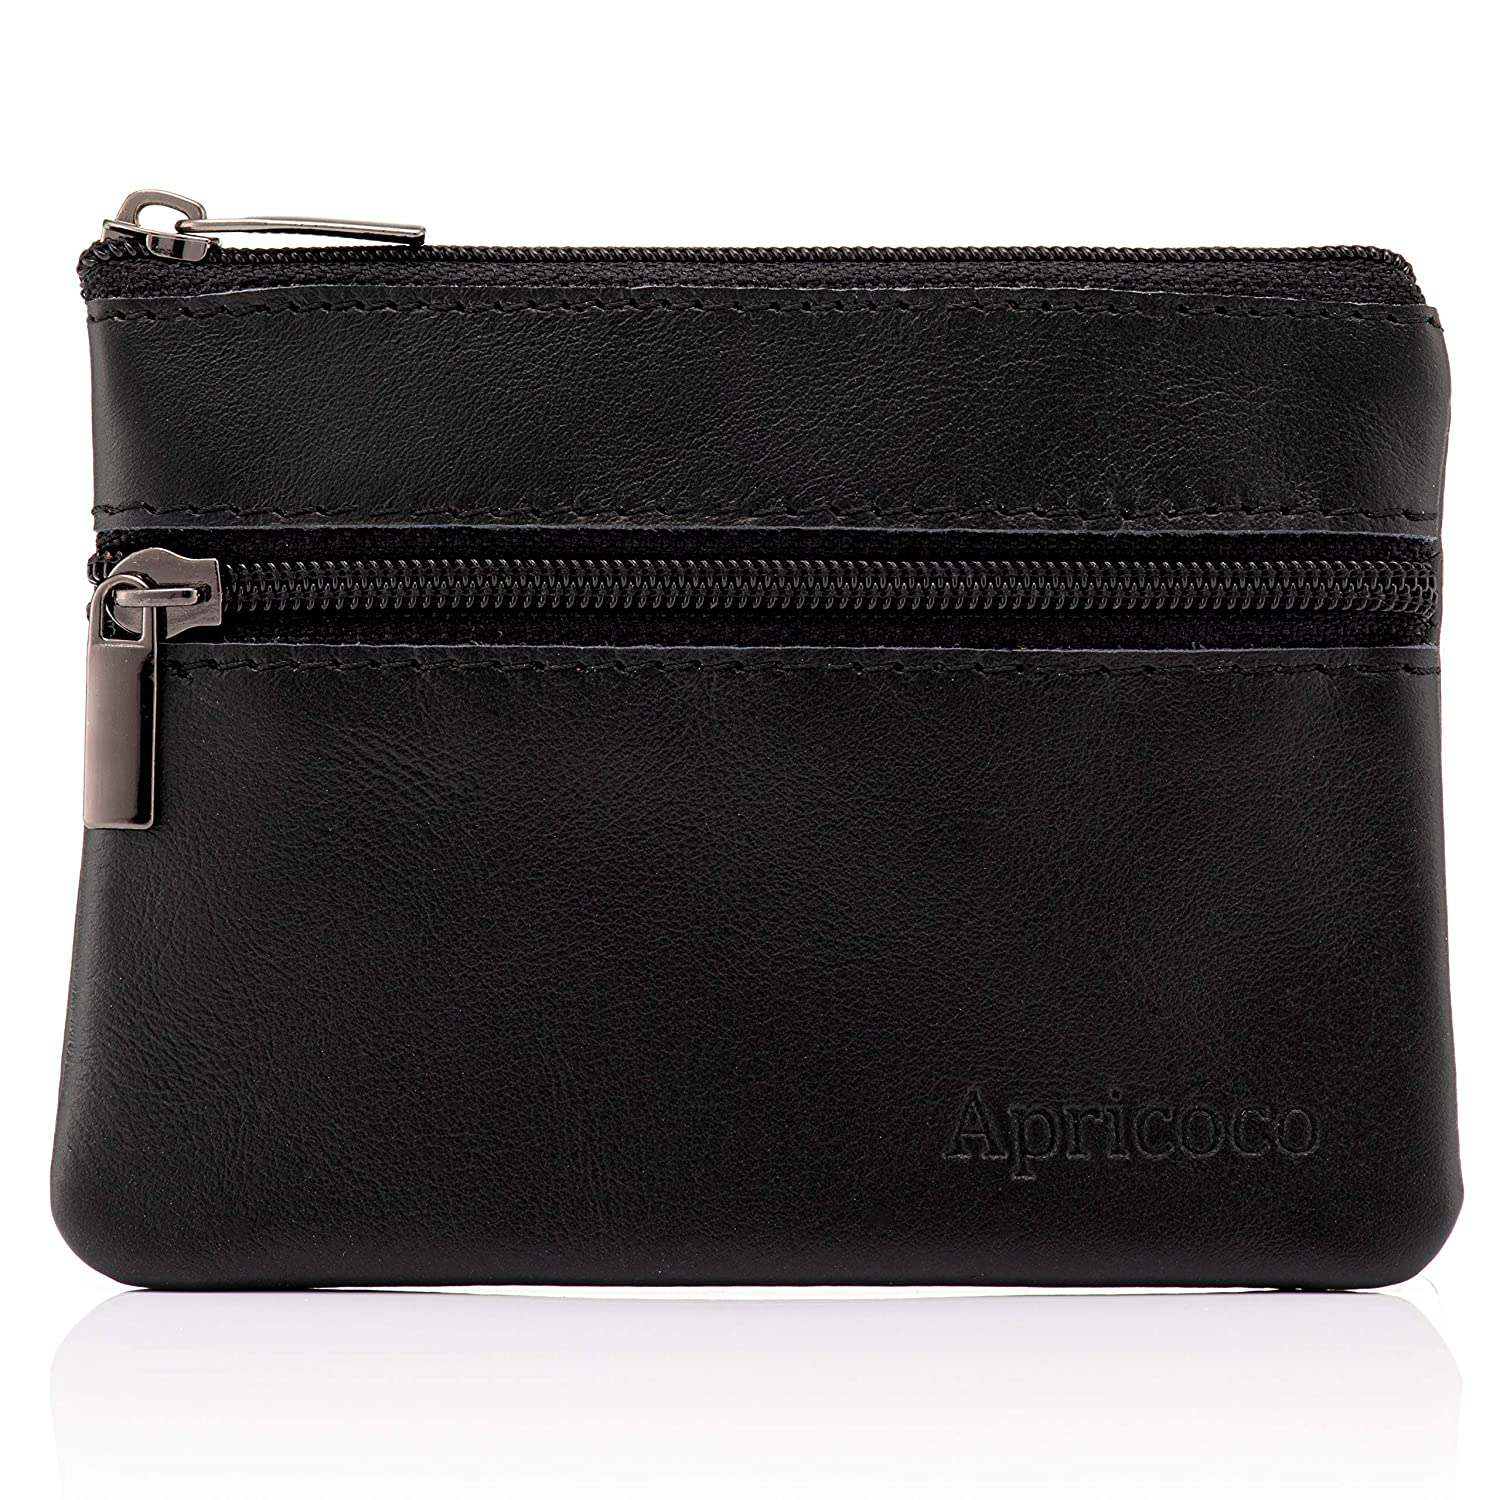 Black Leather Pocket Wallet Credit Card Holder and Coin Pocket Purse with Zipper and Gift Box APRICOCO RFID Blocking Coin Purse Wallet and Pouch for Women and Men